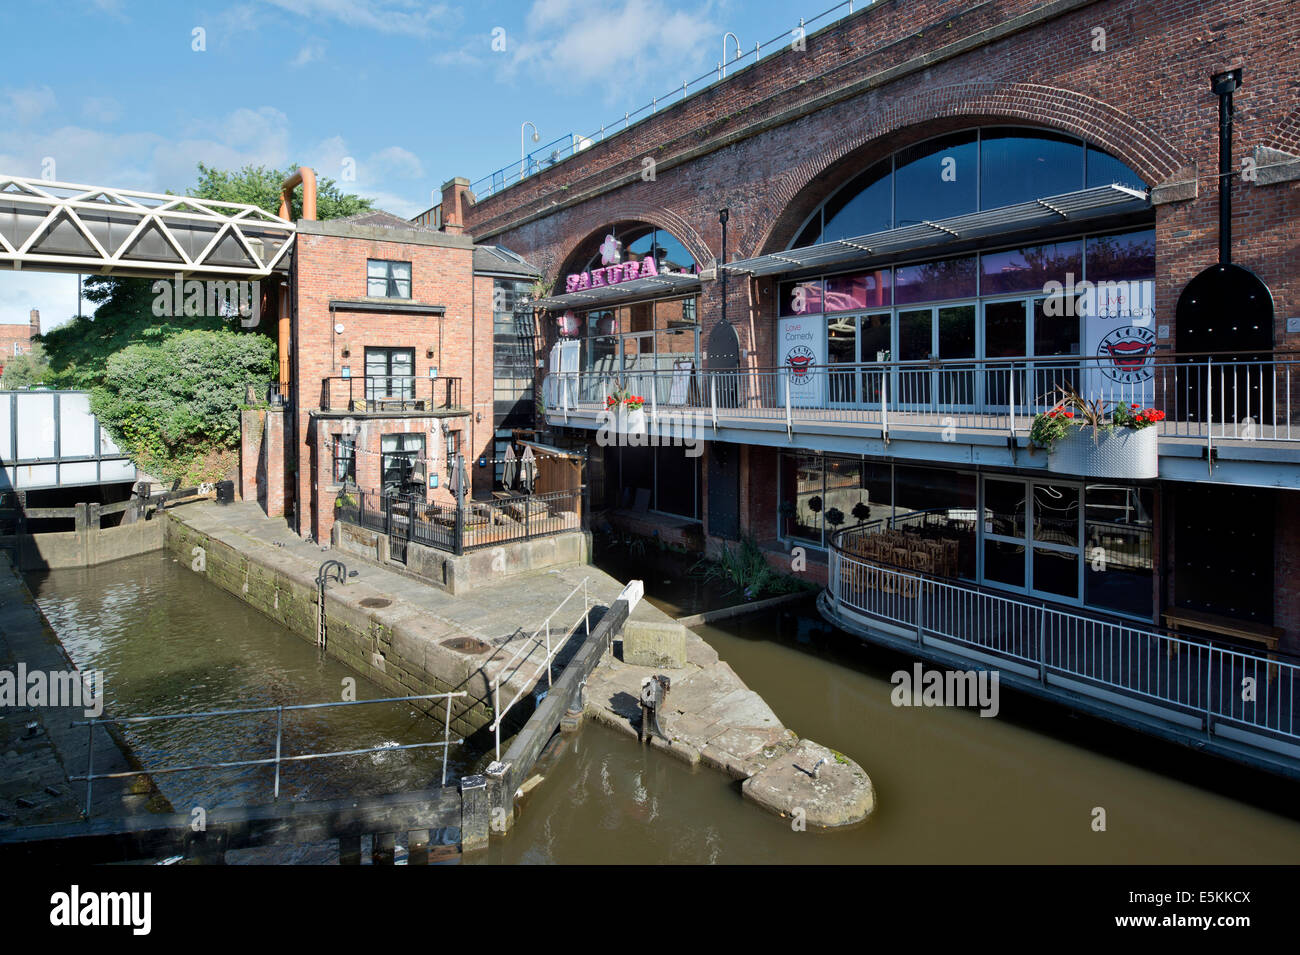 Sakura and The Comedy Store, and another neighbouring bar in the summer sunshine at Deansgate Locks in Manchester. - Stock Image